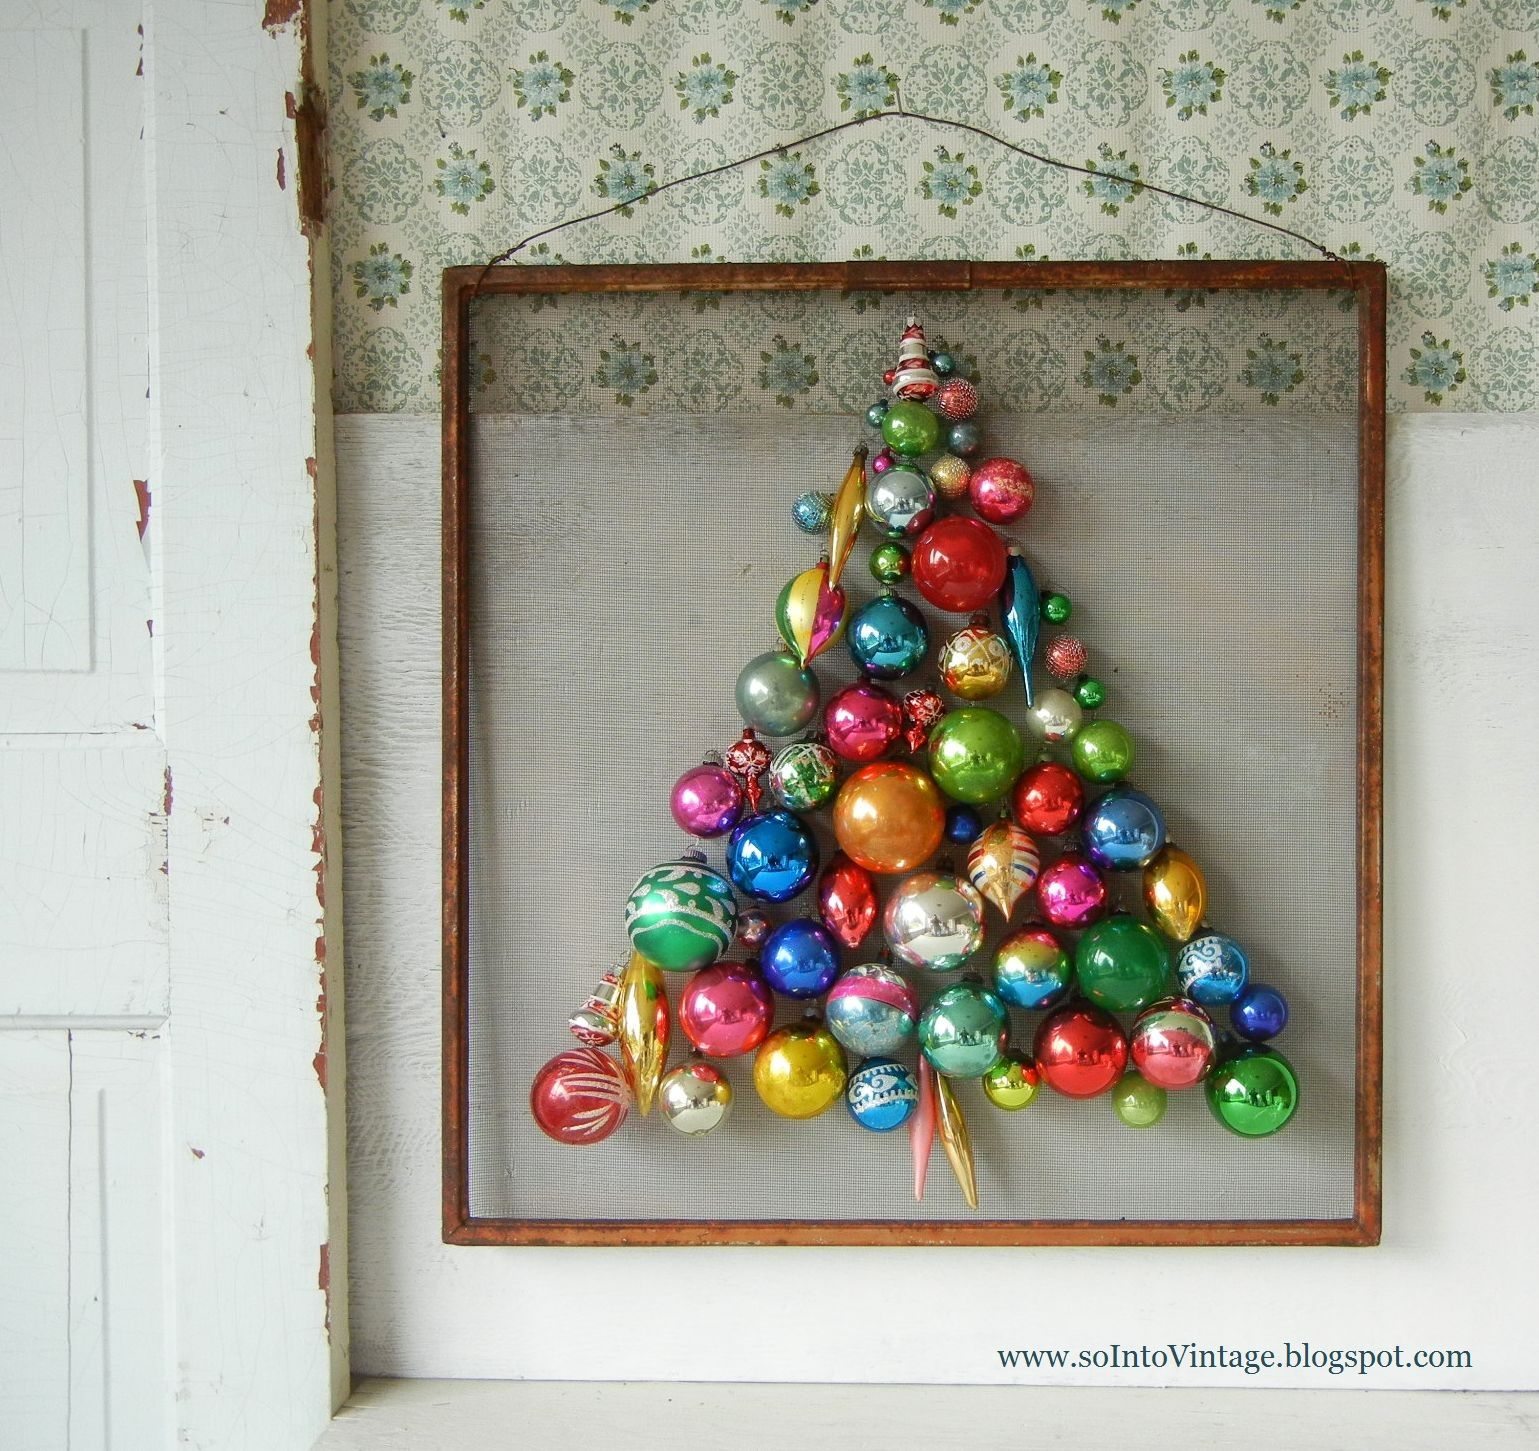 Into Vintage: Practice Makes Not-Quite-Perfect. I love this idea- what a great idea for utilizing vintage/antique ornaments!